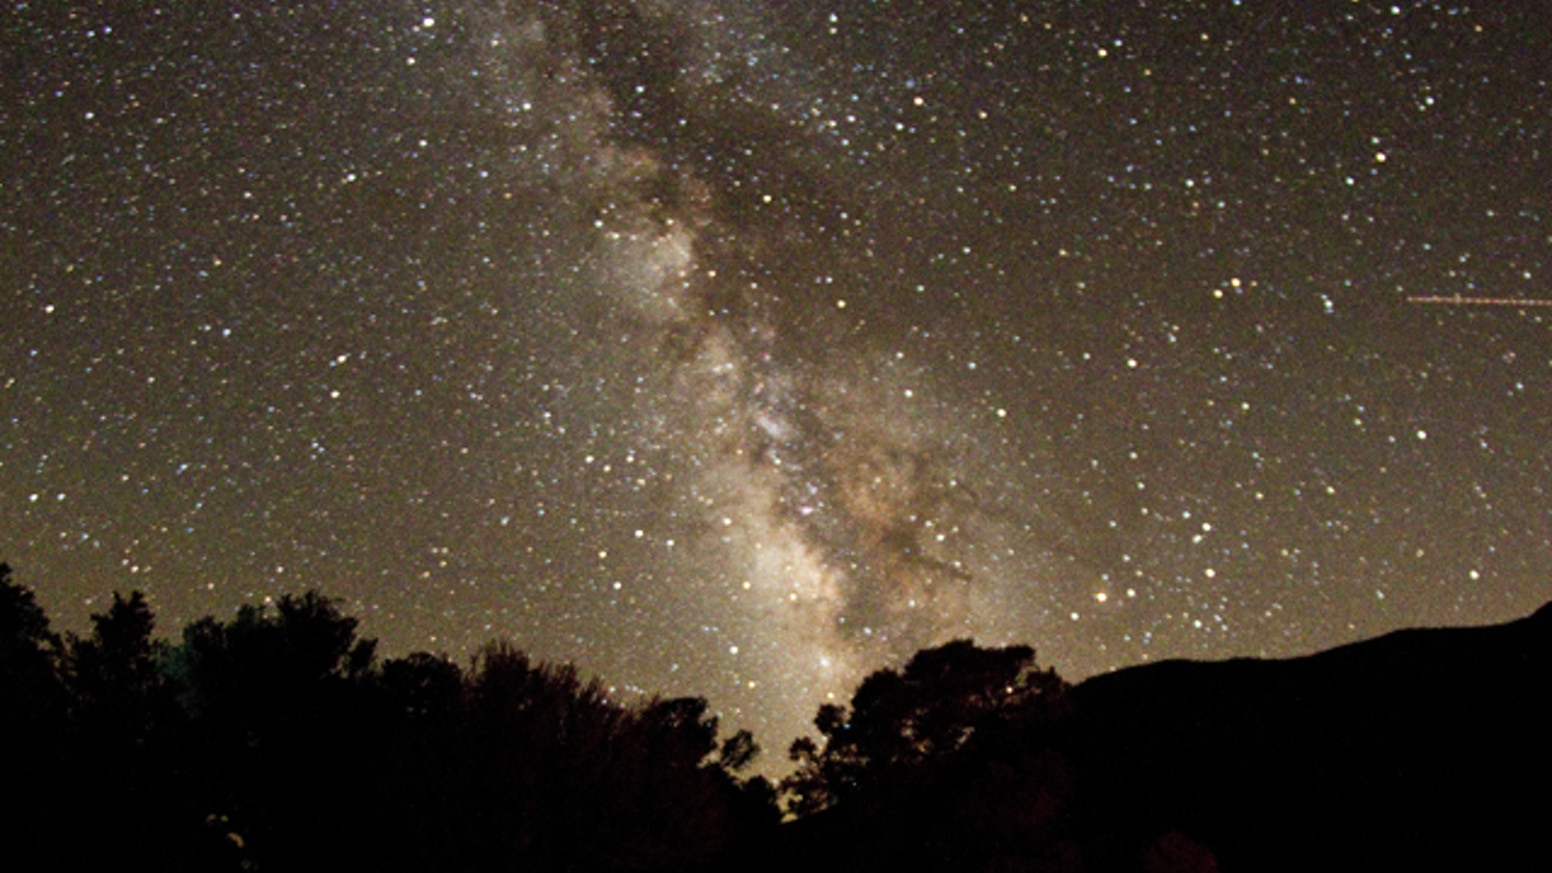 Two astrophotographers set out to capture the perfect Milky Way image.